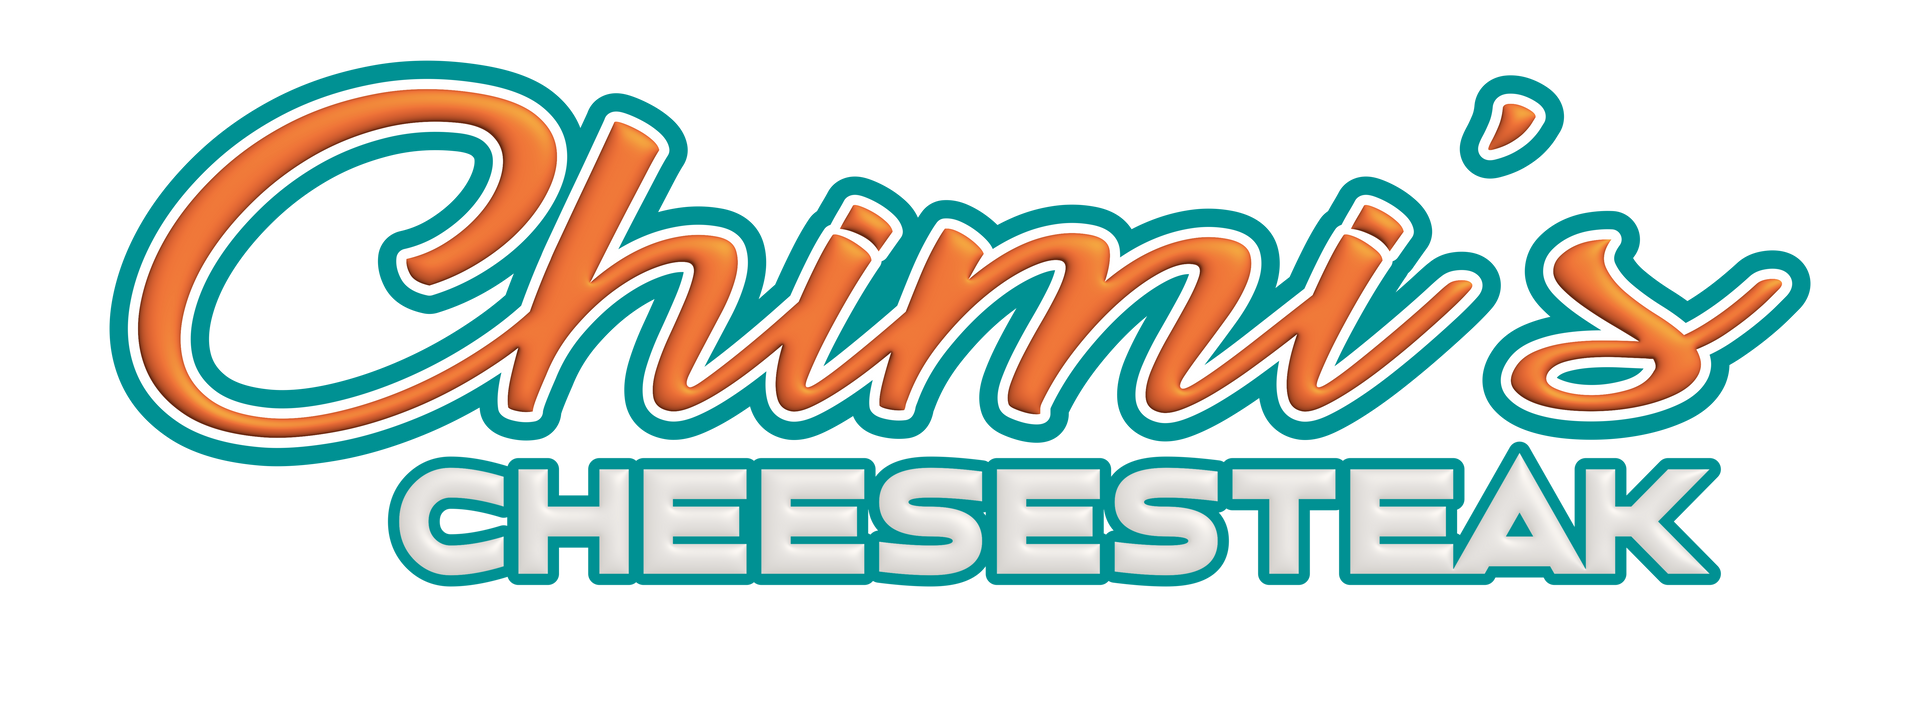 Chimi's Cheesesteak